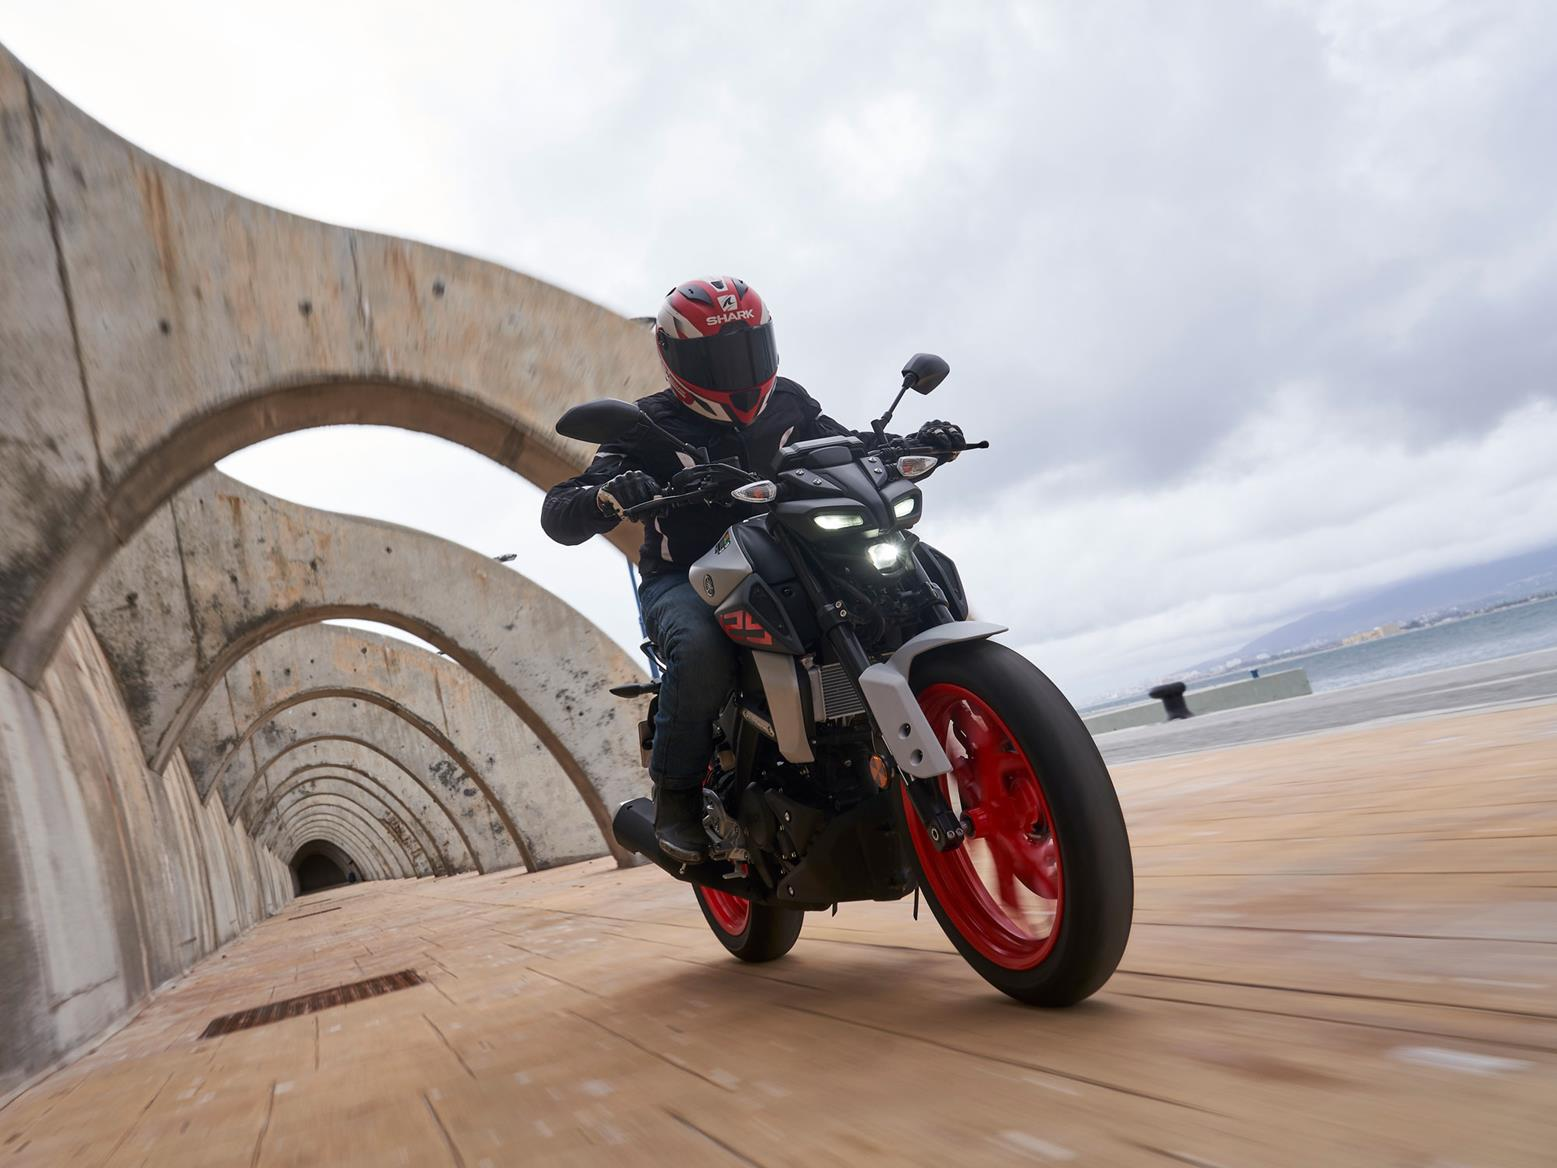 2020 Yamaha MT-125 heading through tunnels on the launch, pilotted by Dan Sutherland